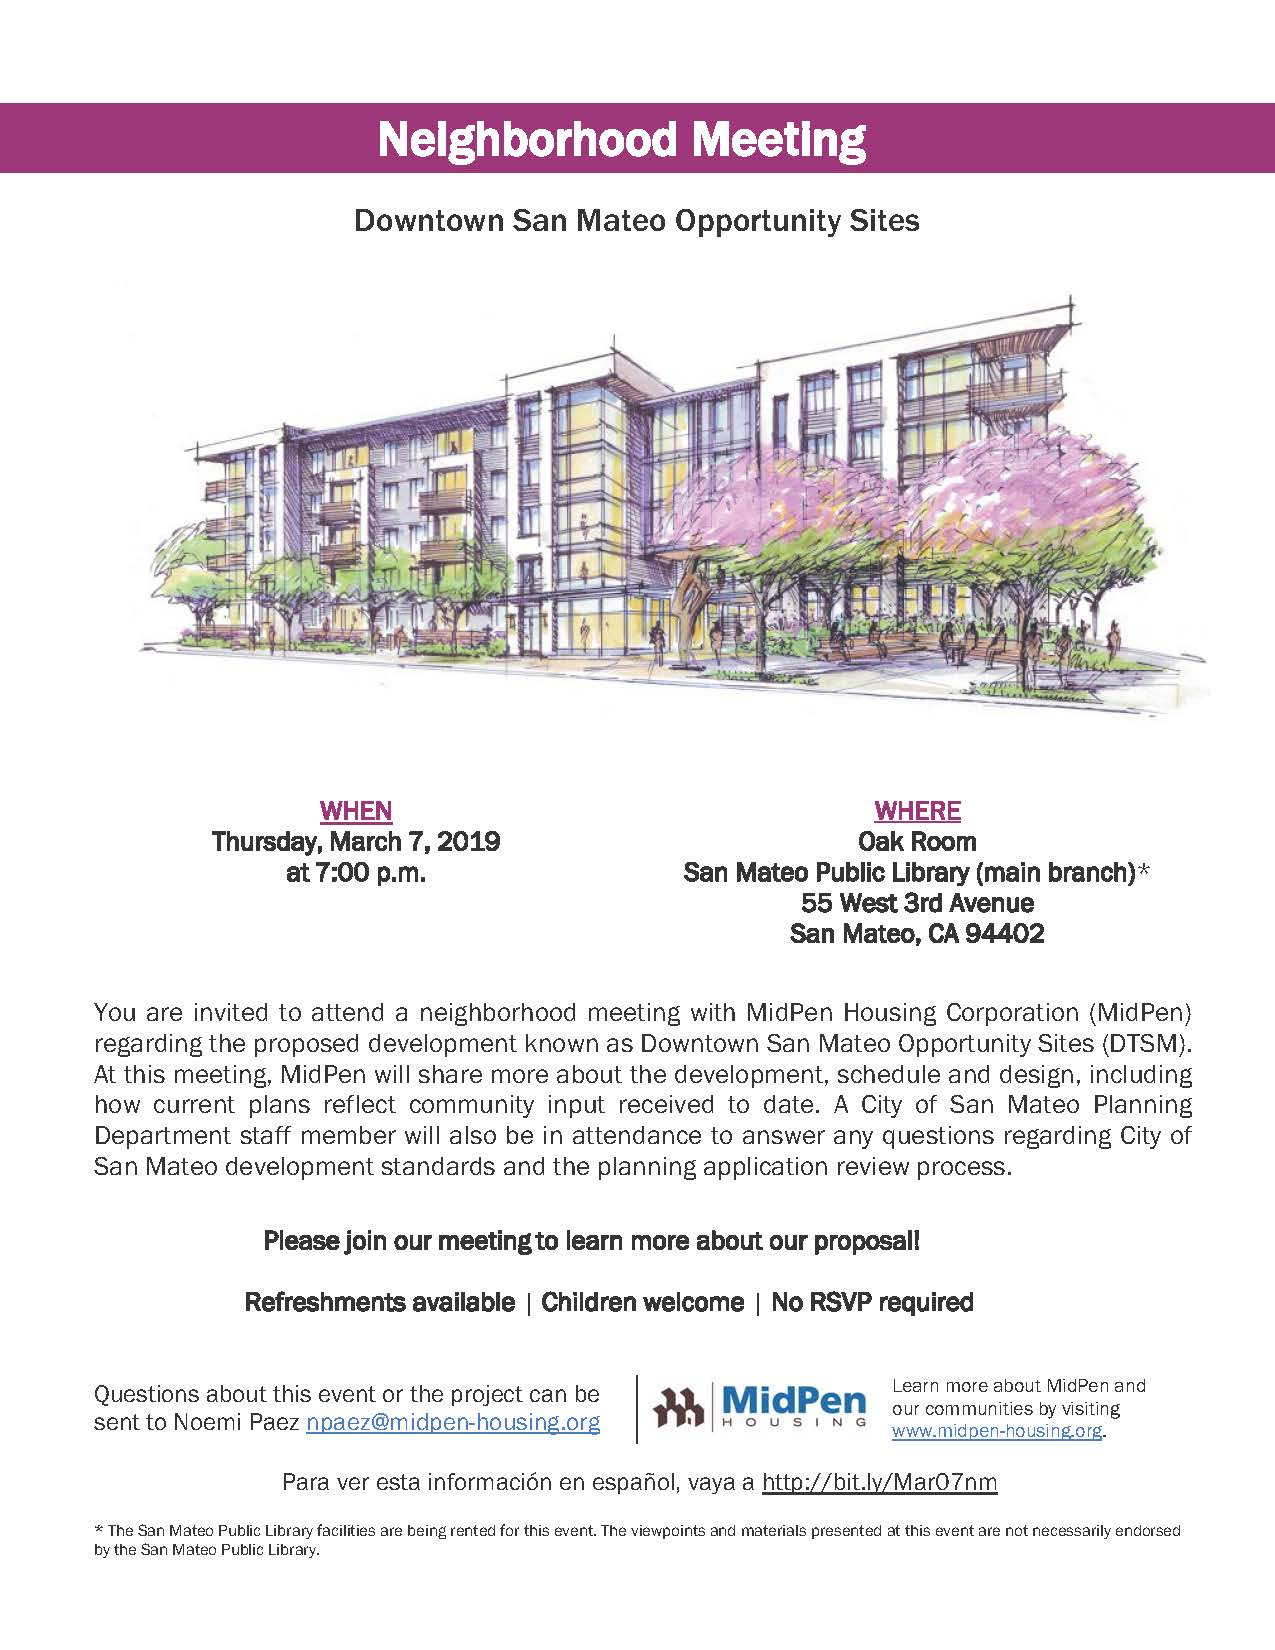 Downtown Opportunity Sites Neighborhood meeting March 7 Flyer ENGLISH